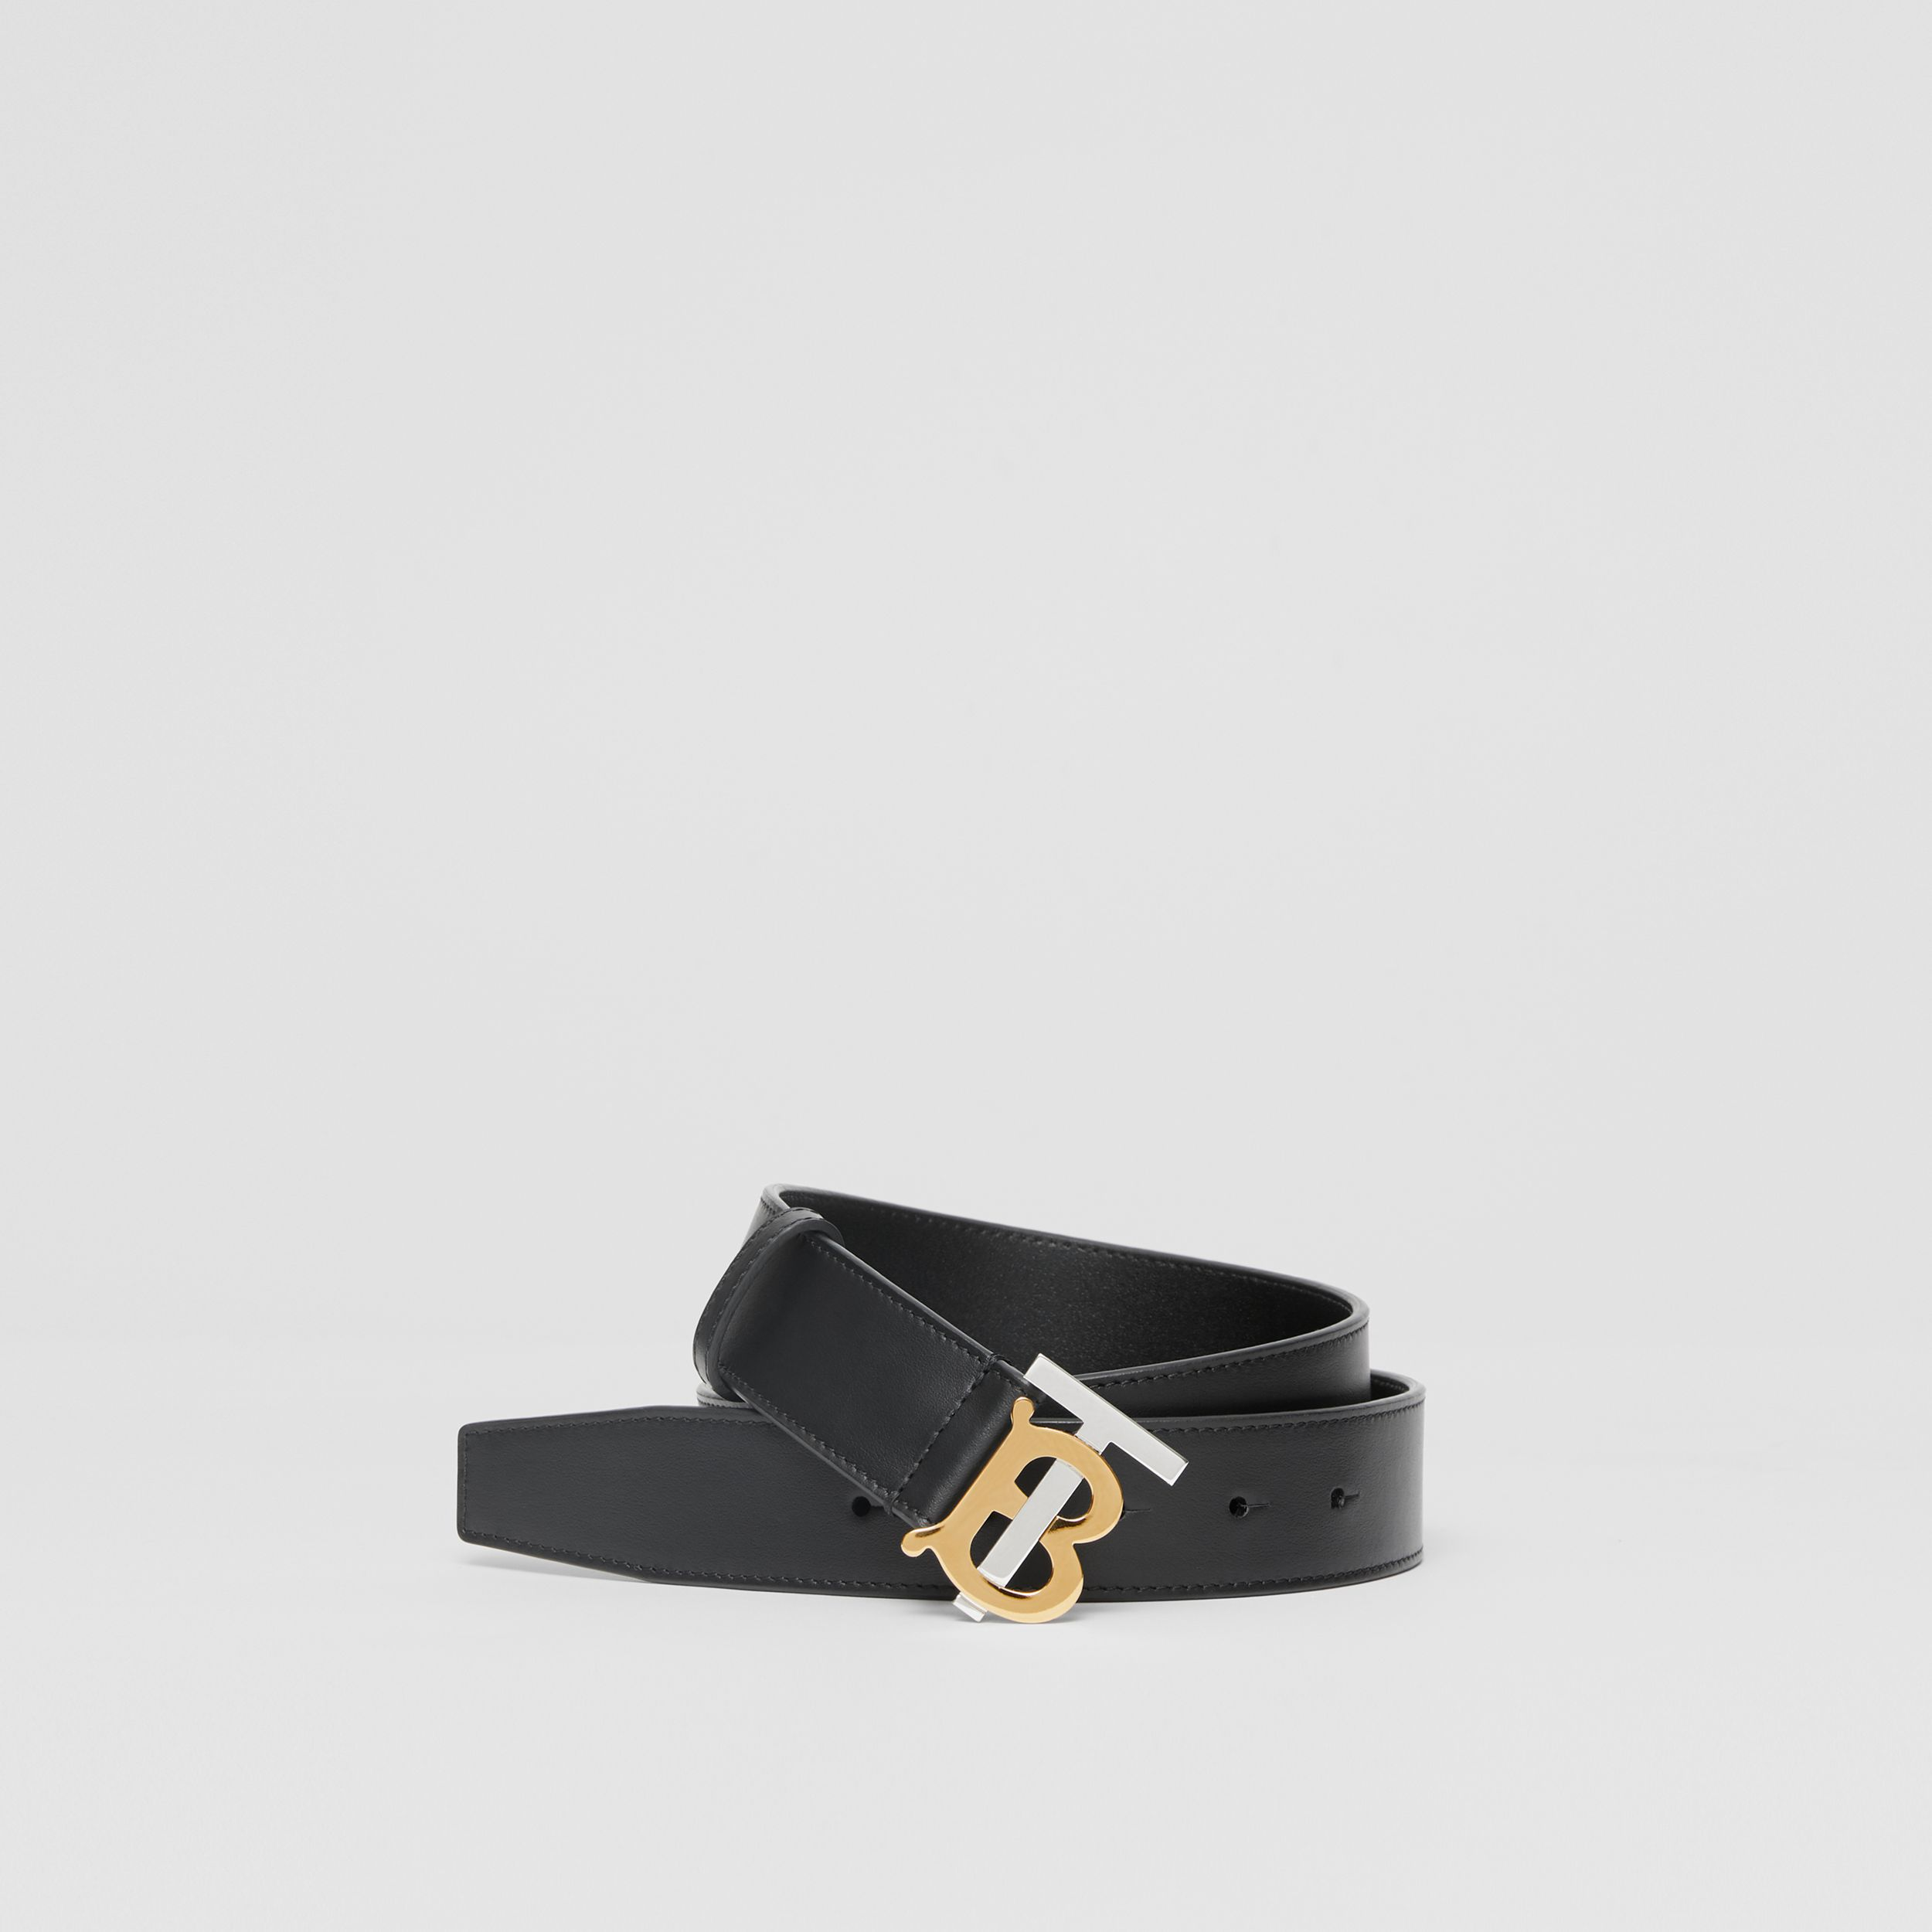 Two-tone Monogram Motif Leather Belt in Black - Men | Burberry - 1